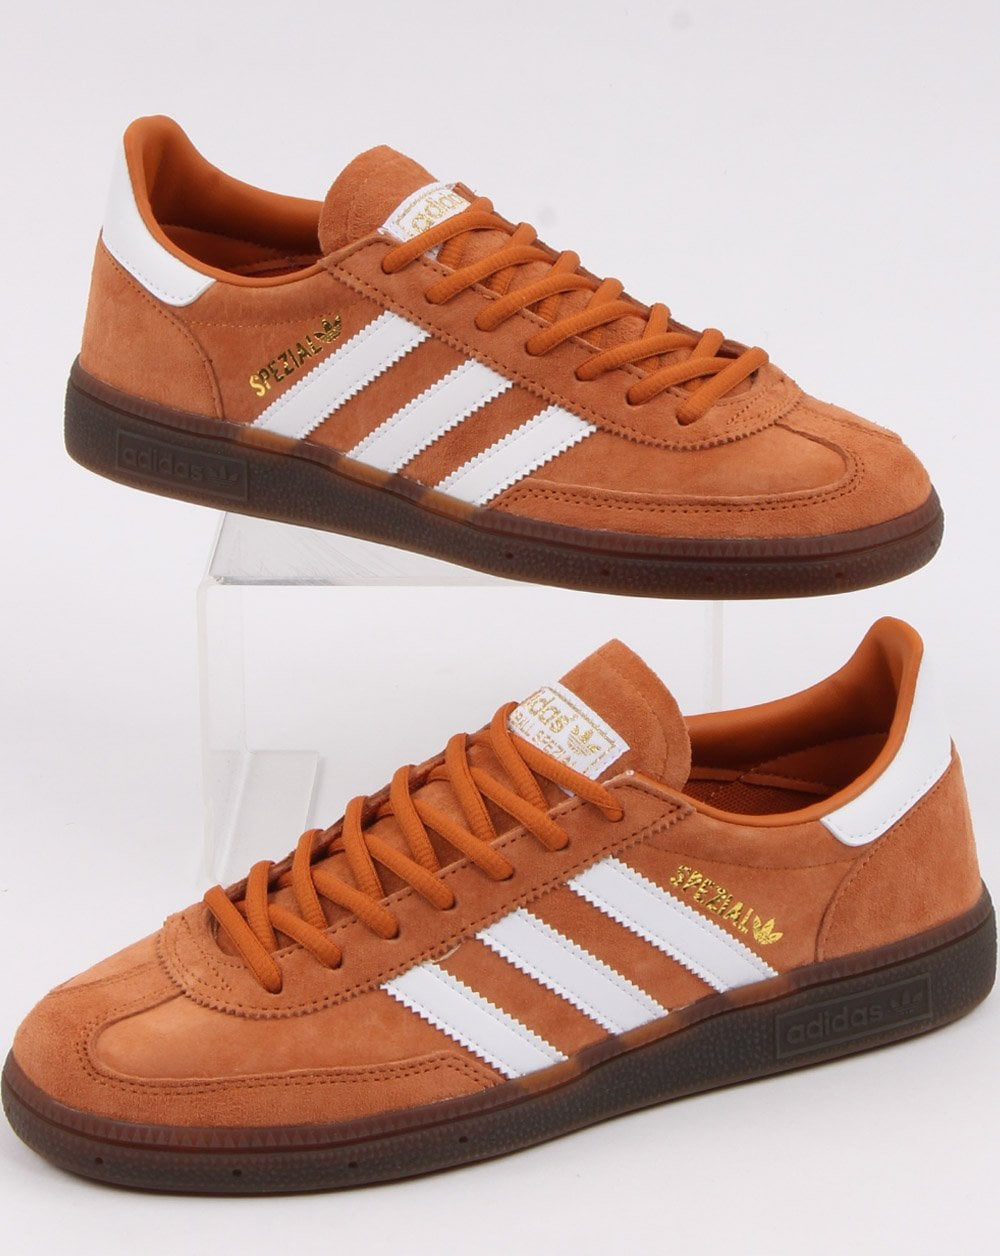 Adiós Es exagerar  Adidas Spezial Trainers Copper/White, Burnt Orange - Adidas At 80sCC